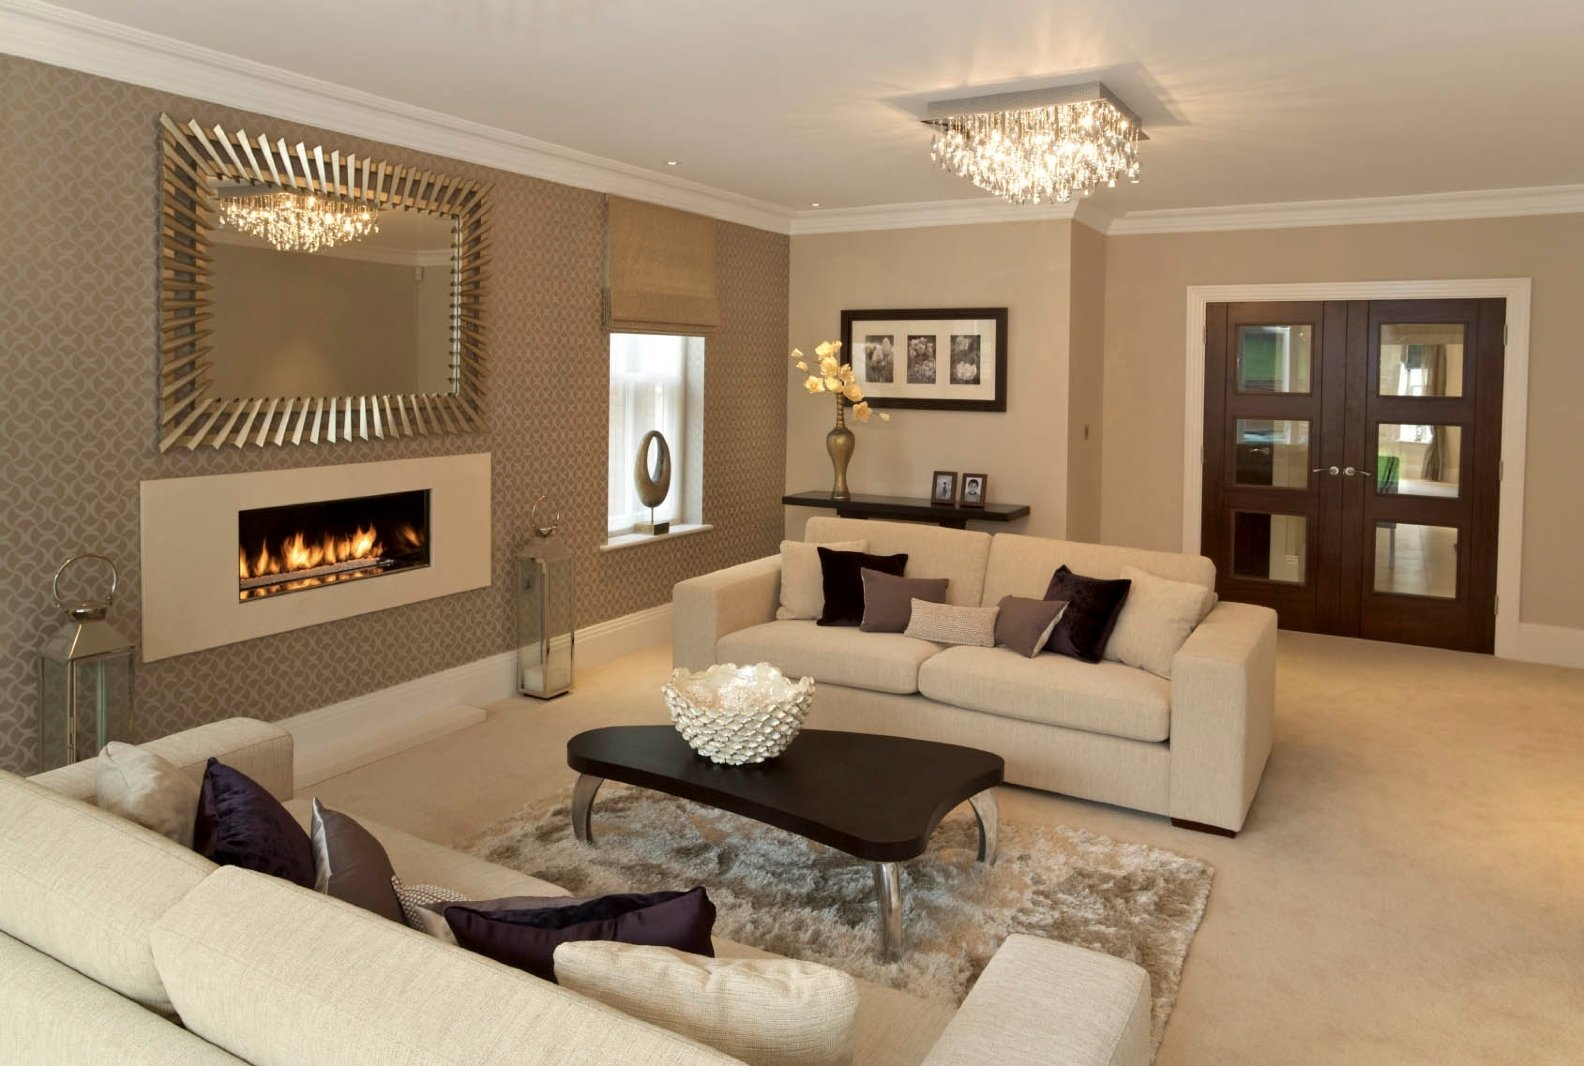 10 Most Recommended Living Room Interior Decorating Ideas living rooms room interior designexpert decorators in fort 2020